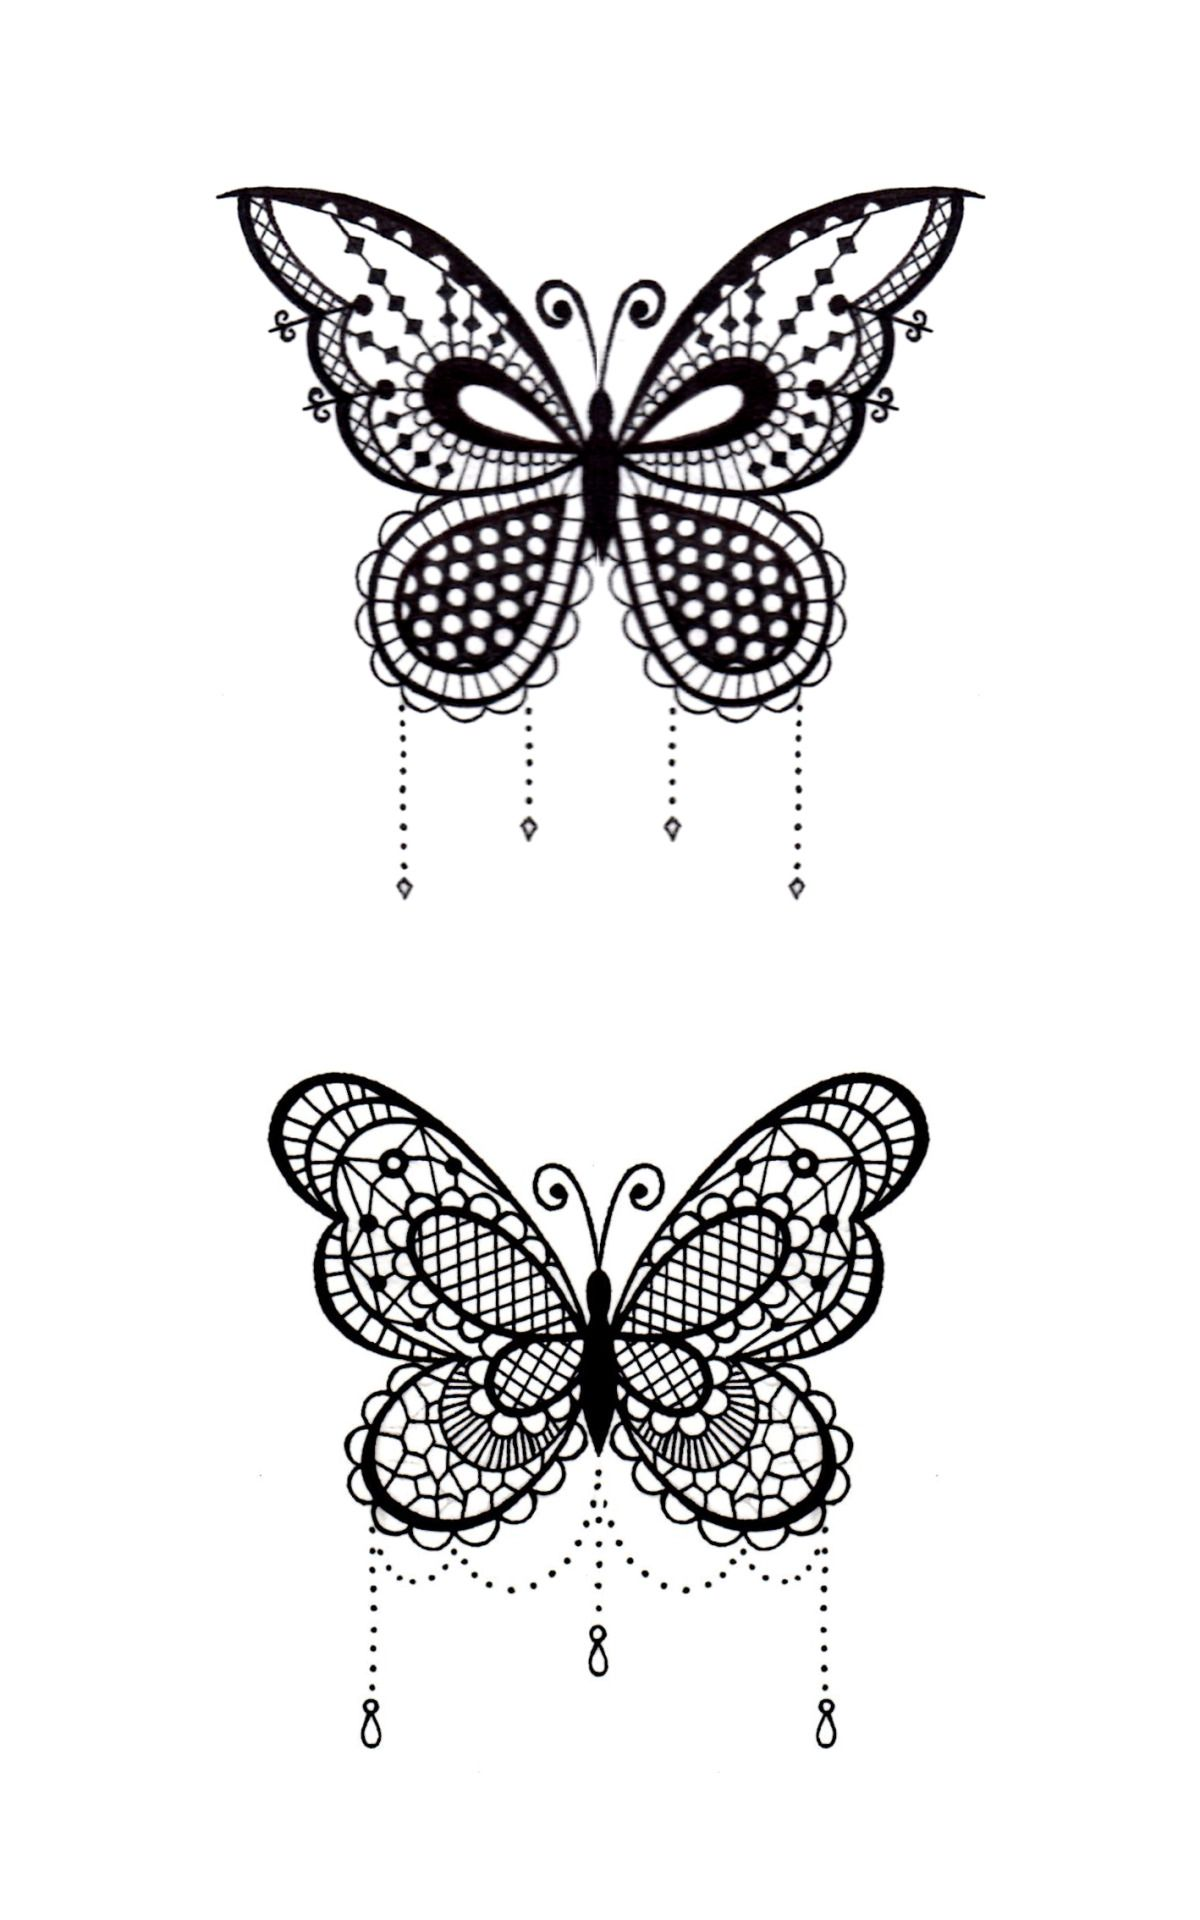 Butterfly Tattoos Simple Henna Design: Lace Butterfly Tattoo - Google Search (With Images)